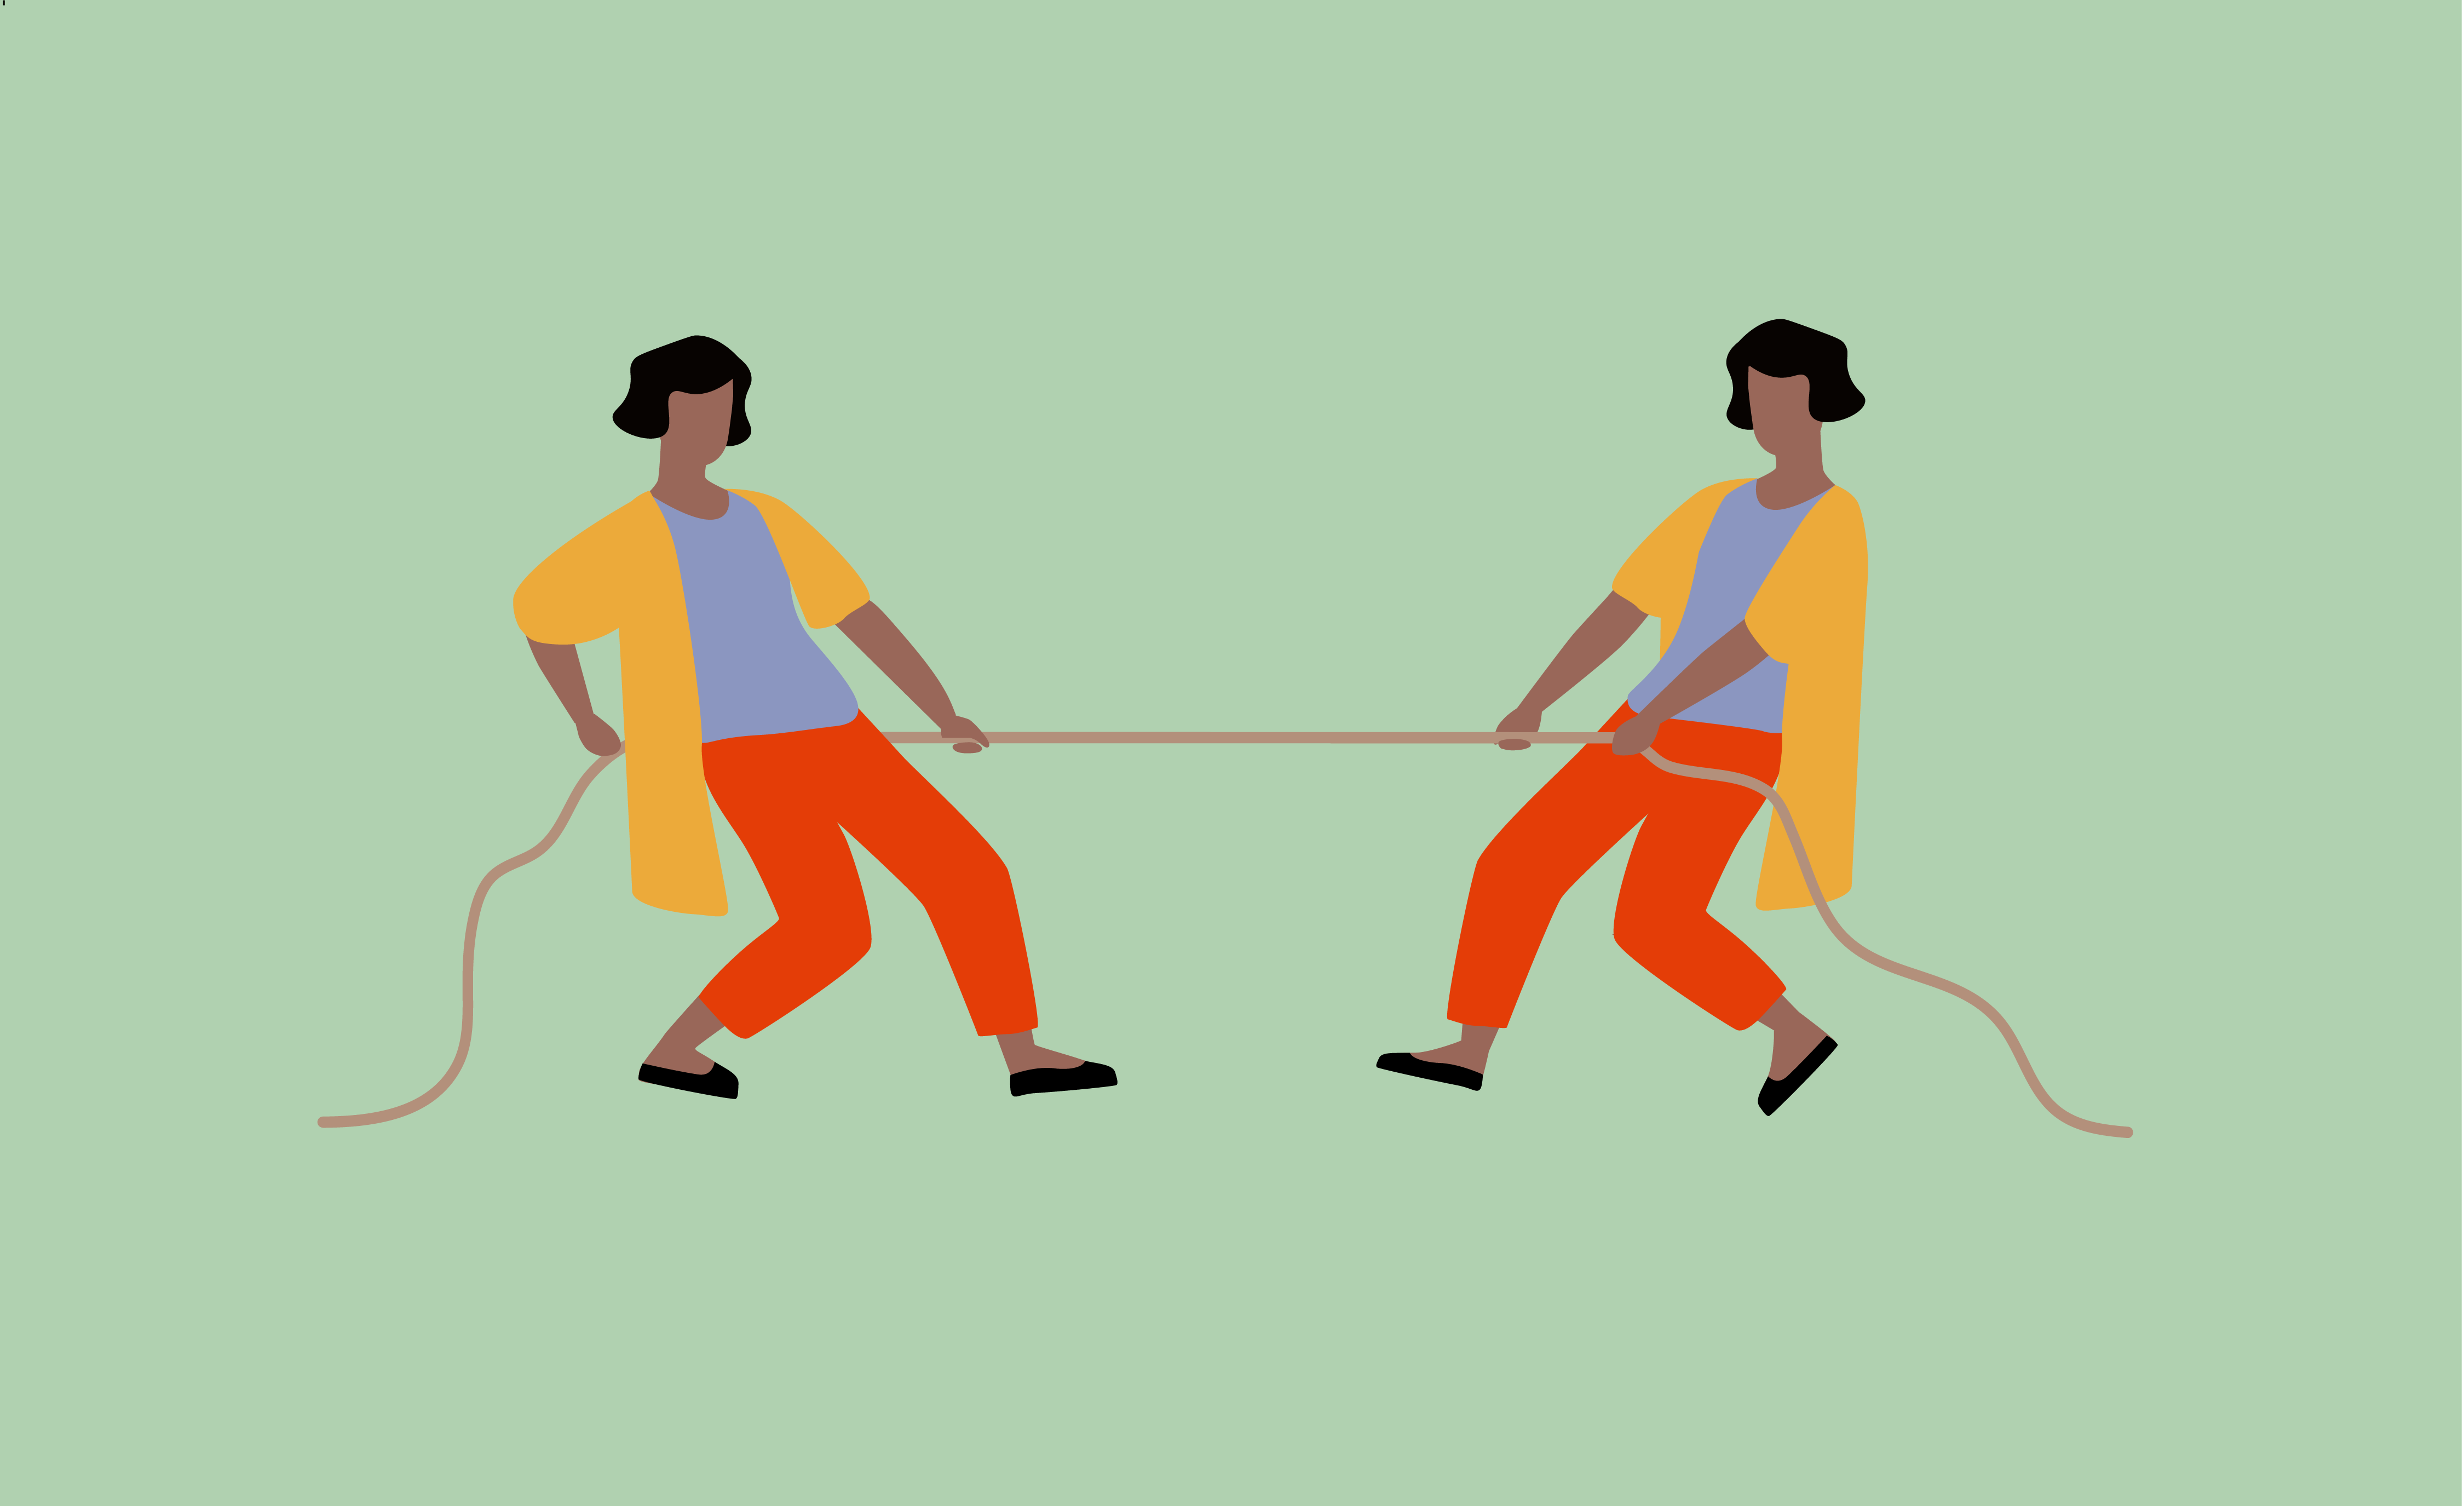 Graphic illustration of two people who look exactly the same doing tug-of-war with a piece of rope